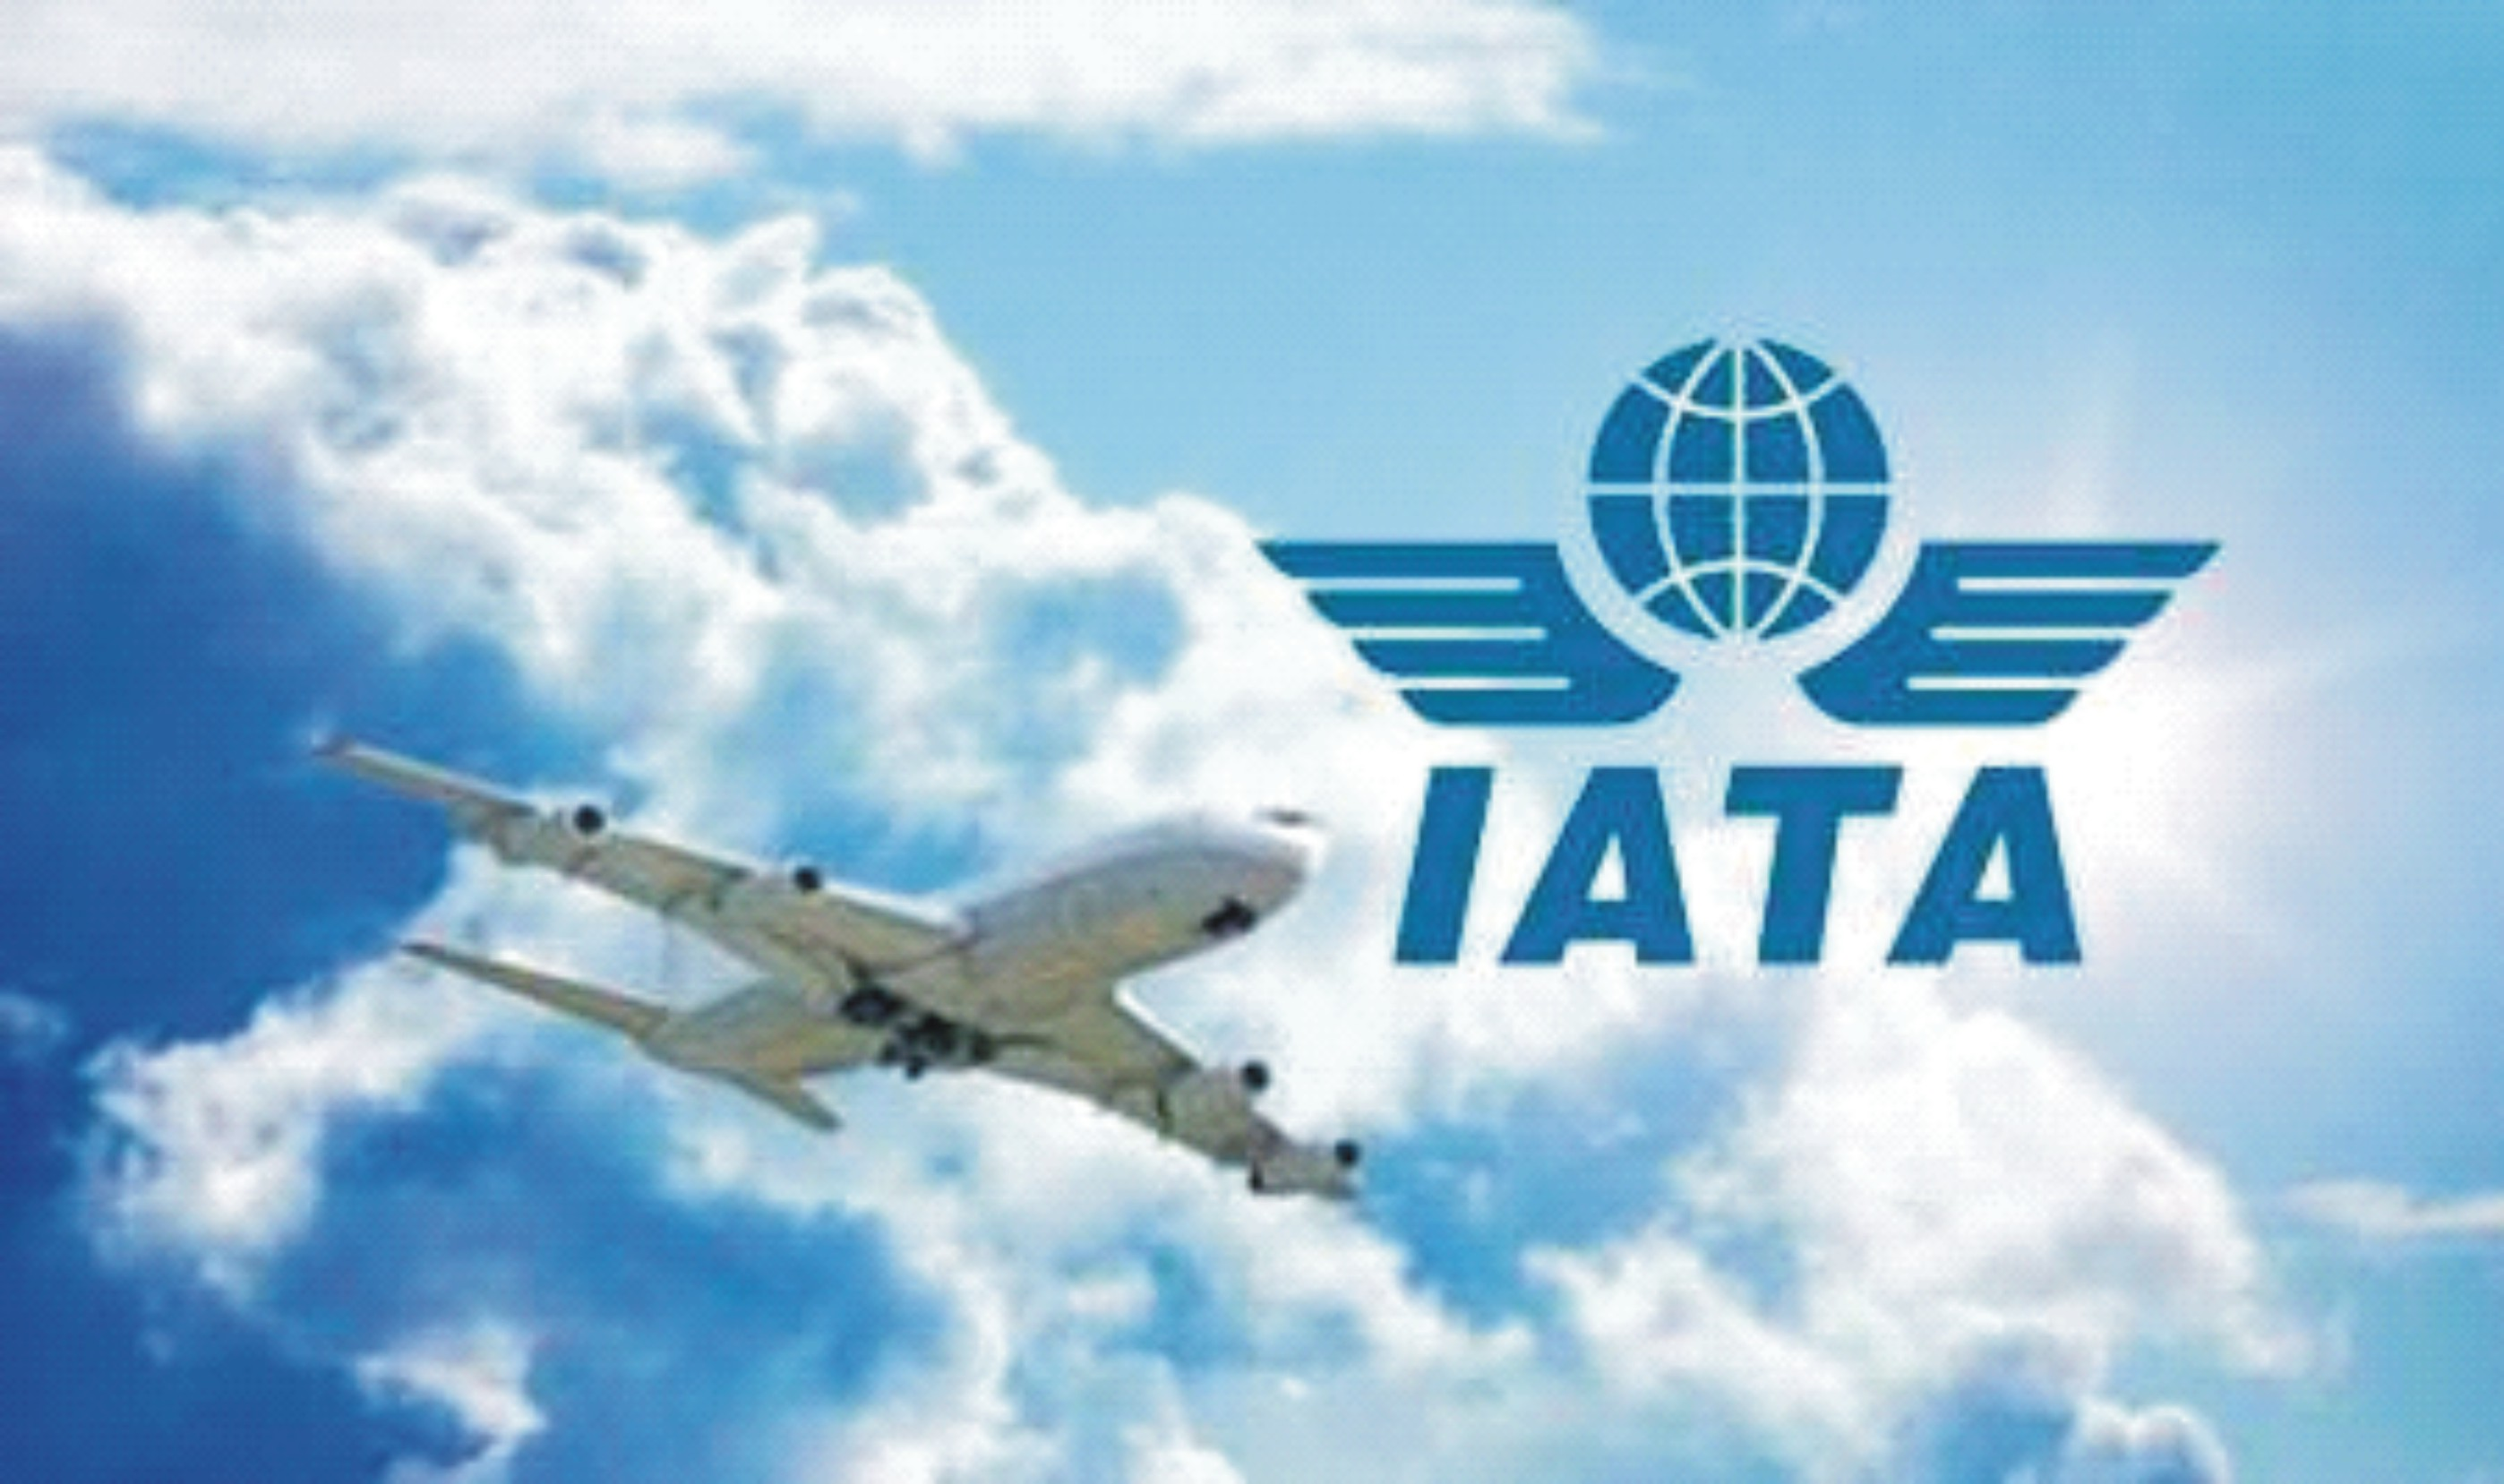 International Air Travel Association